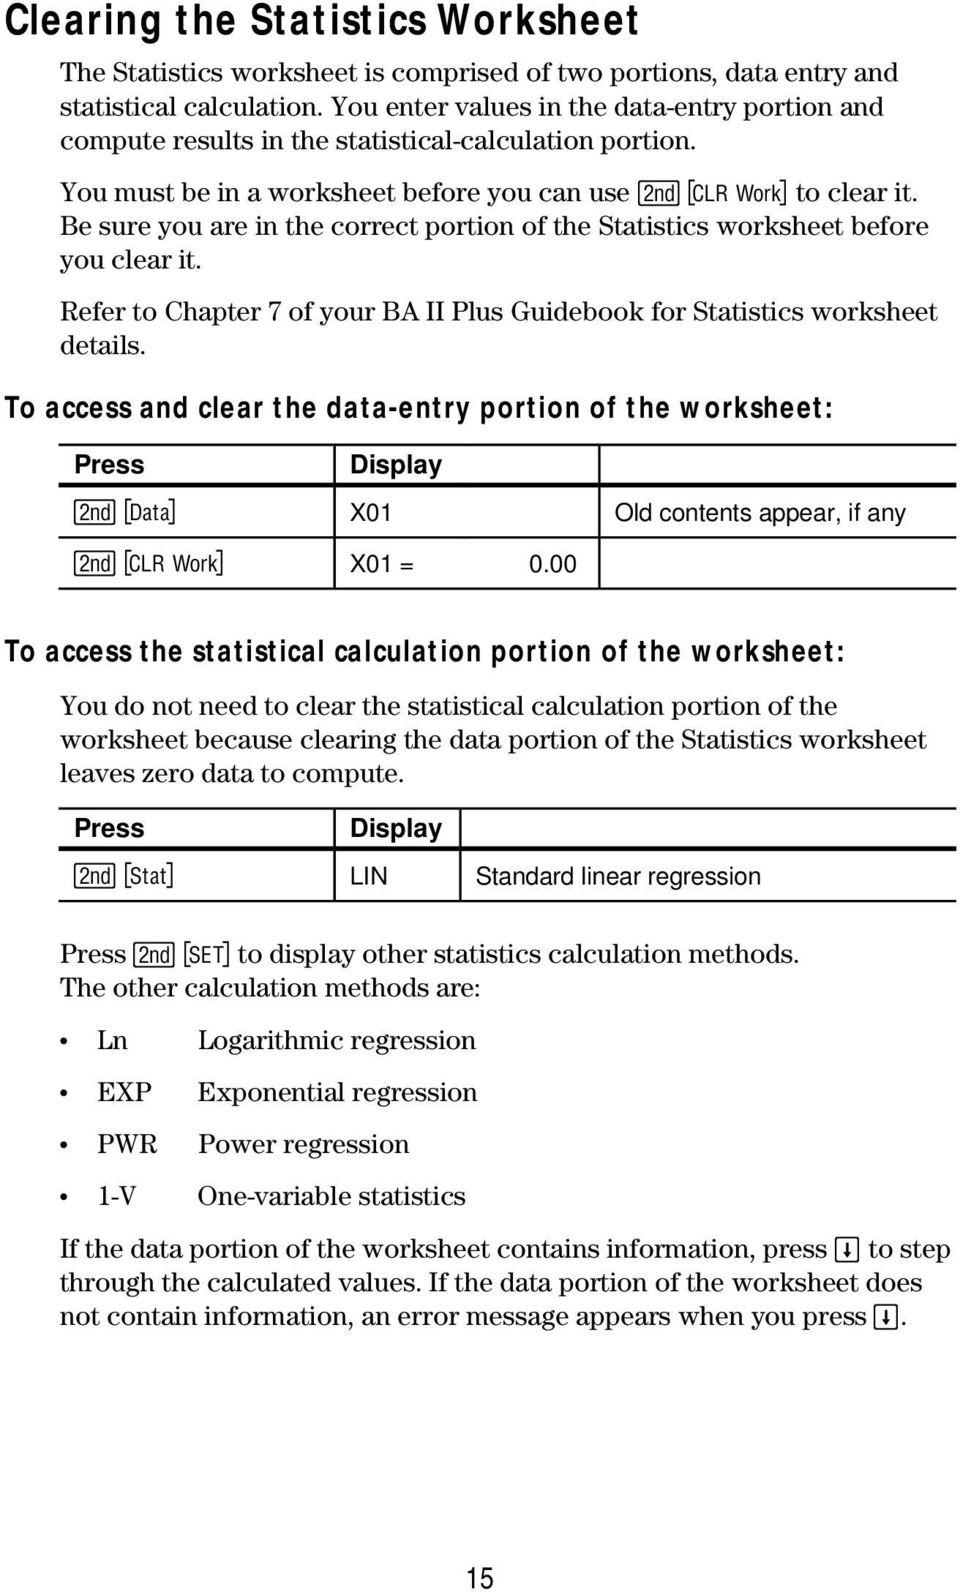 Be sure you are in the correct portion of the Statistics worksheet before you clear it. Refer to Chapter 7 of your BA II Plus Guidebook for Statistics worksheet details.